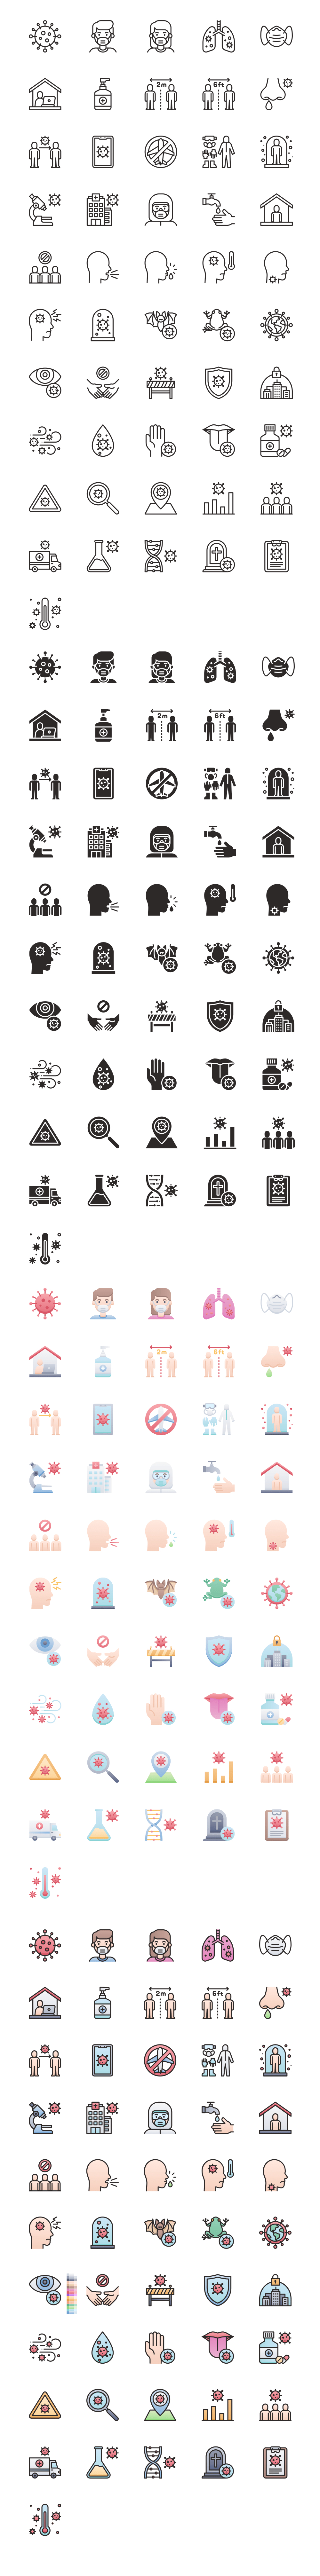 COVID-19 Free Icons - Icons for signage, health notices, disease information, publications, and aiding in preventing the spread of COVID-19, available to download and use for anything for free.